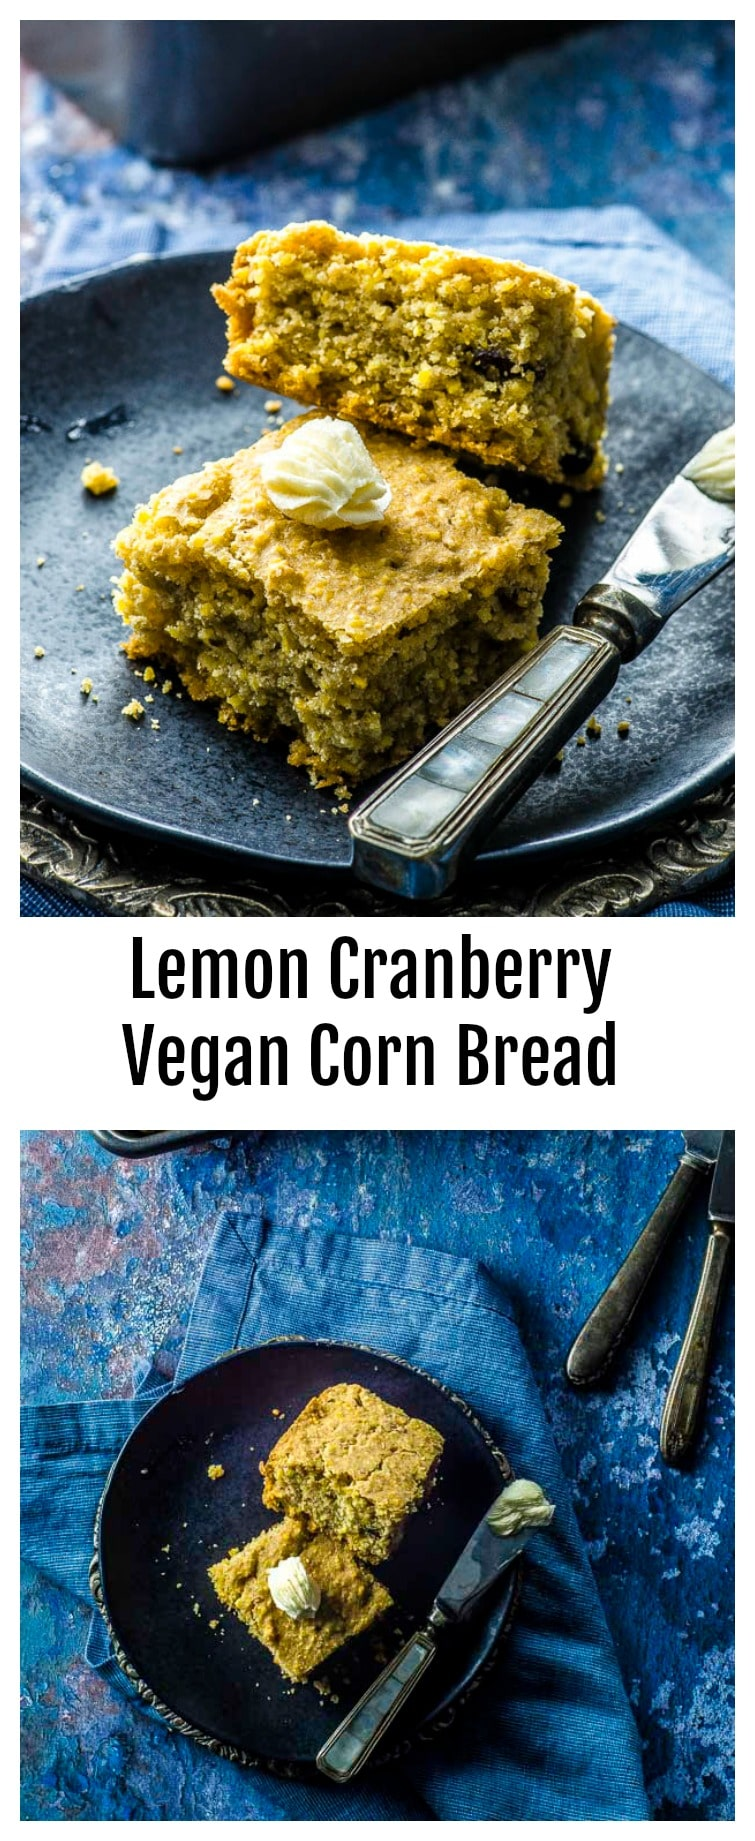 This Lemon Cranberry Vegan Cornbread, is great for breakfast or as a side on your holiday table